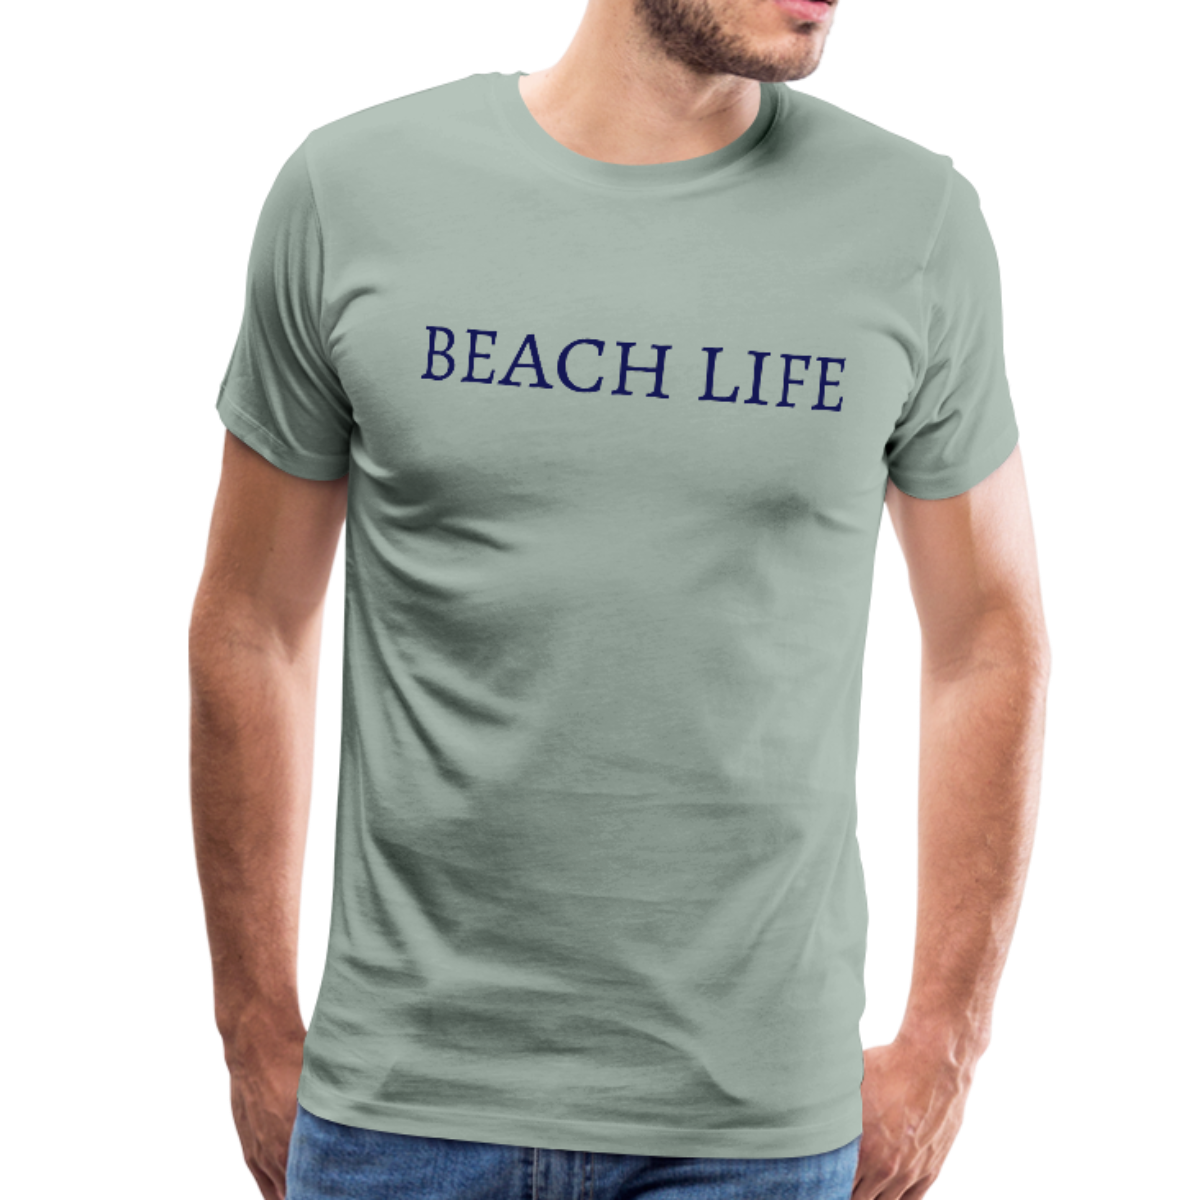 Beach Life-Make Waves 2-sided Men's T